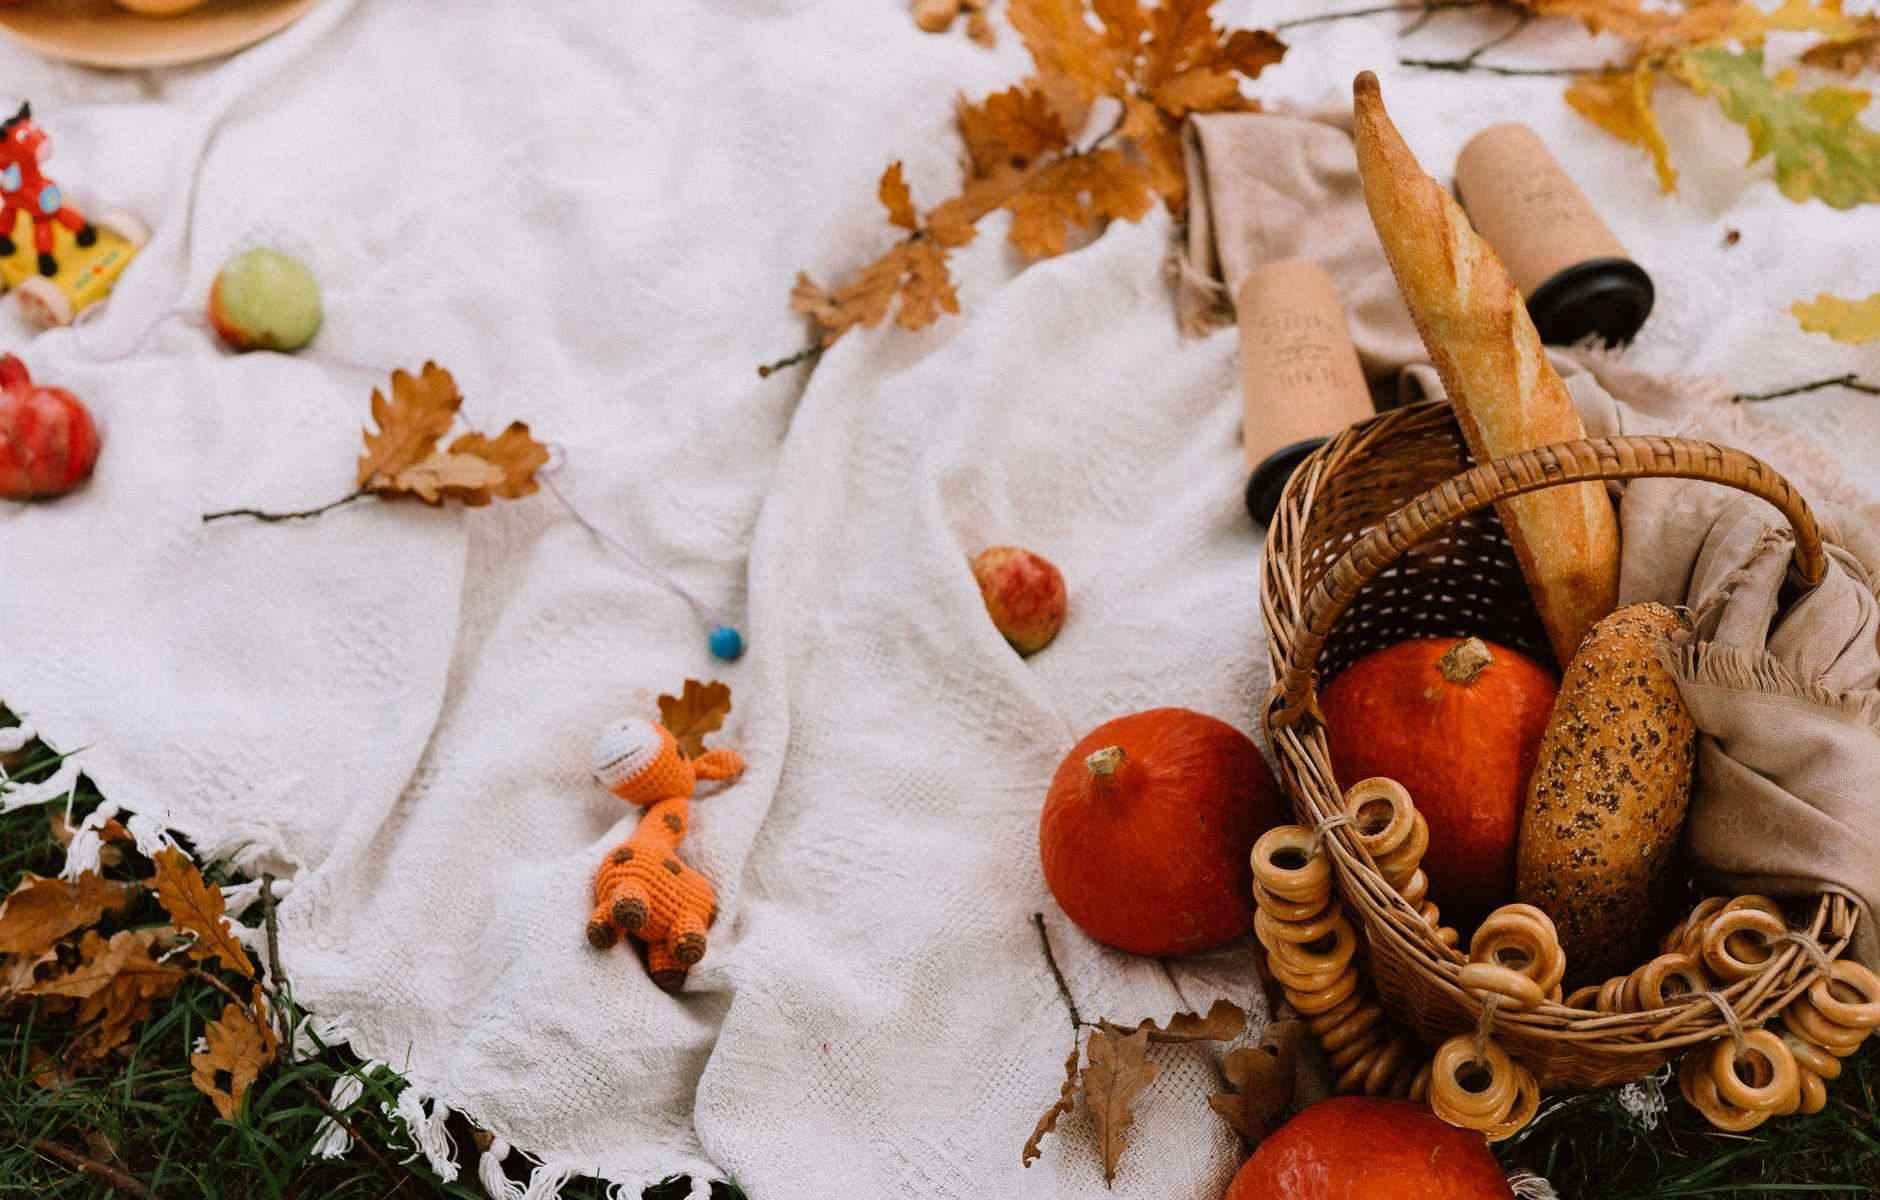 basket with bread and squashes placed on blanket with scattered autumn leaves in nature